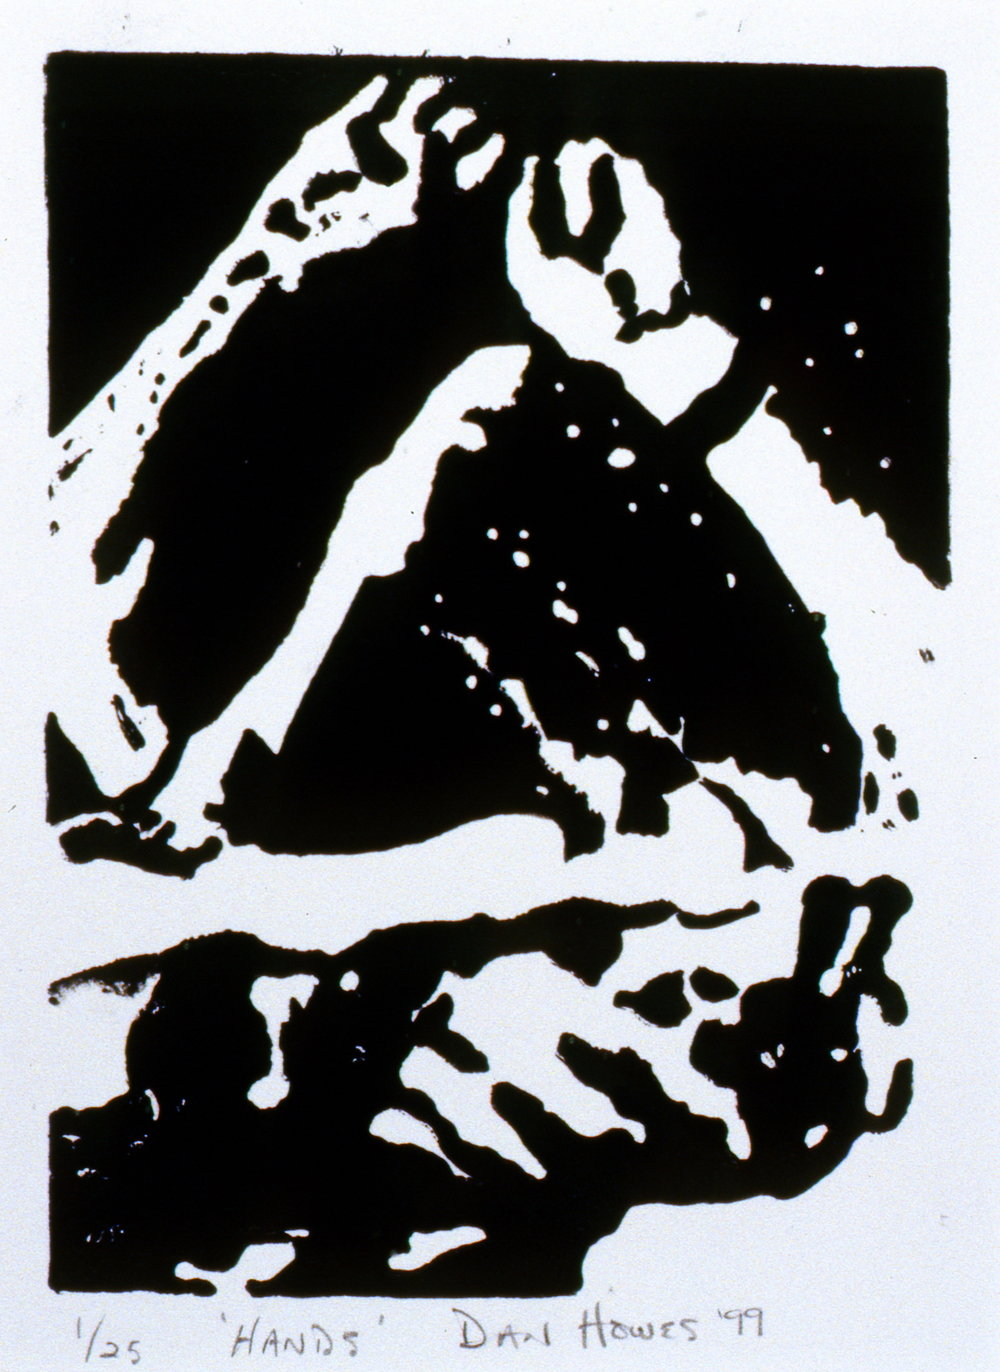 Hands , The Spirit of Ironman Linocut Prints, edition 1/25,1999, Dan Howes, linocut print, 17.7 x 12.5 cm, 1999.02.04, gift of the artist